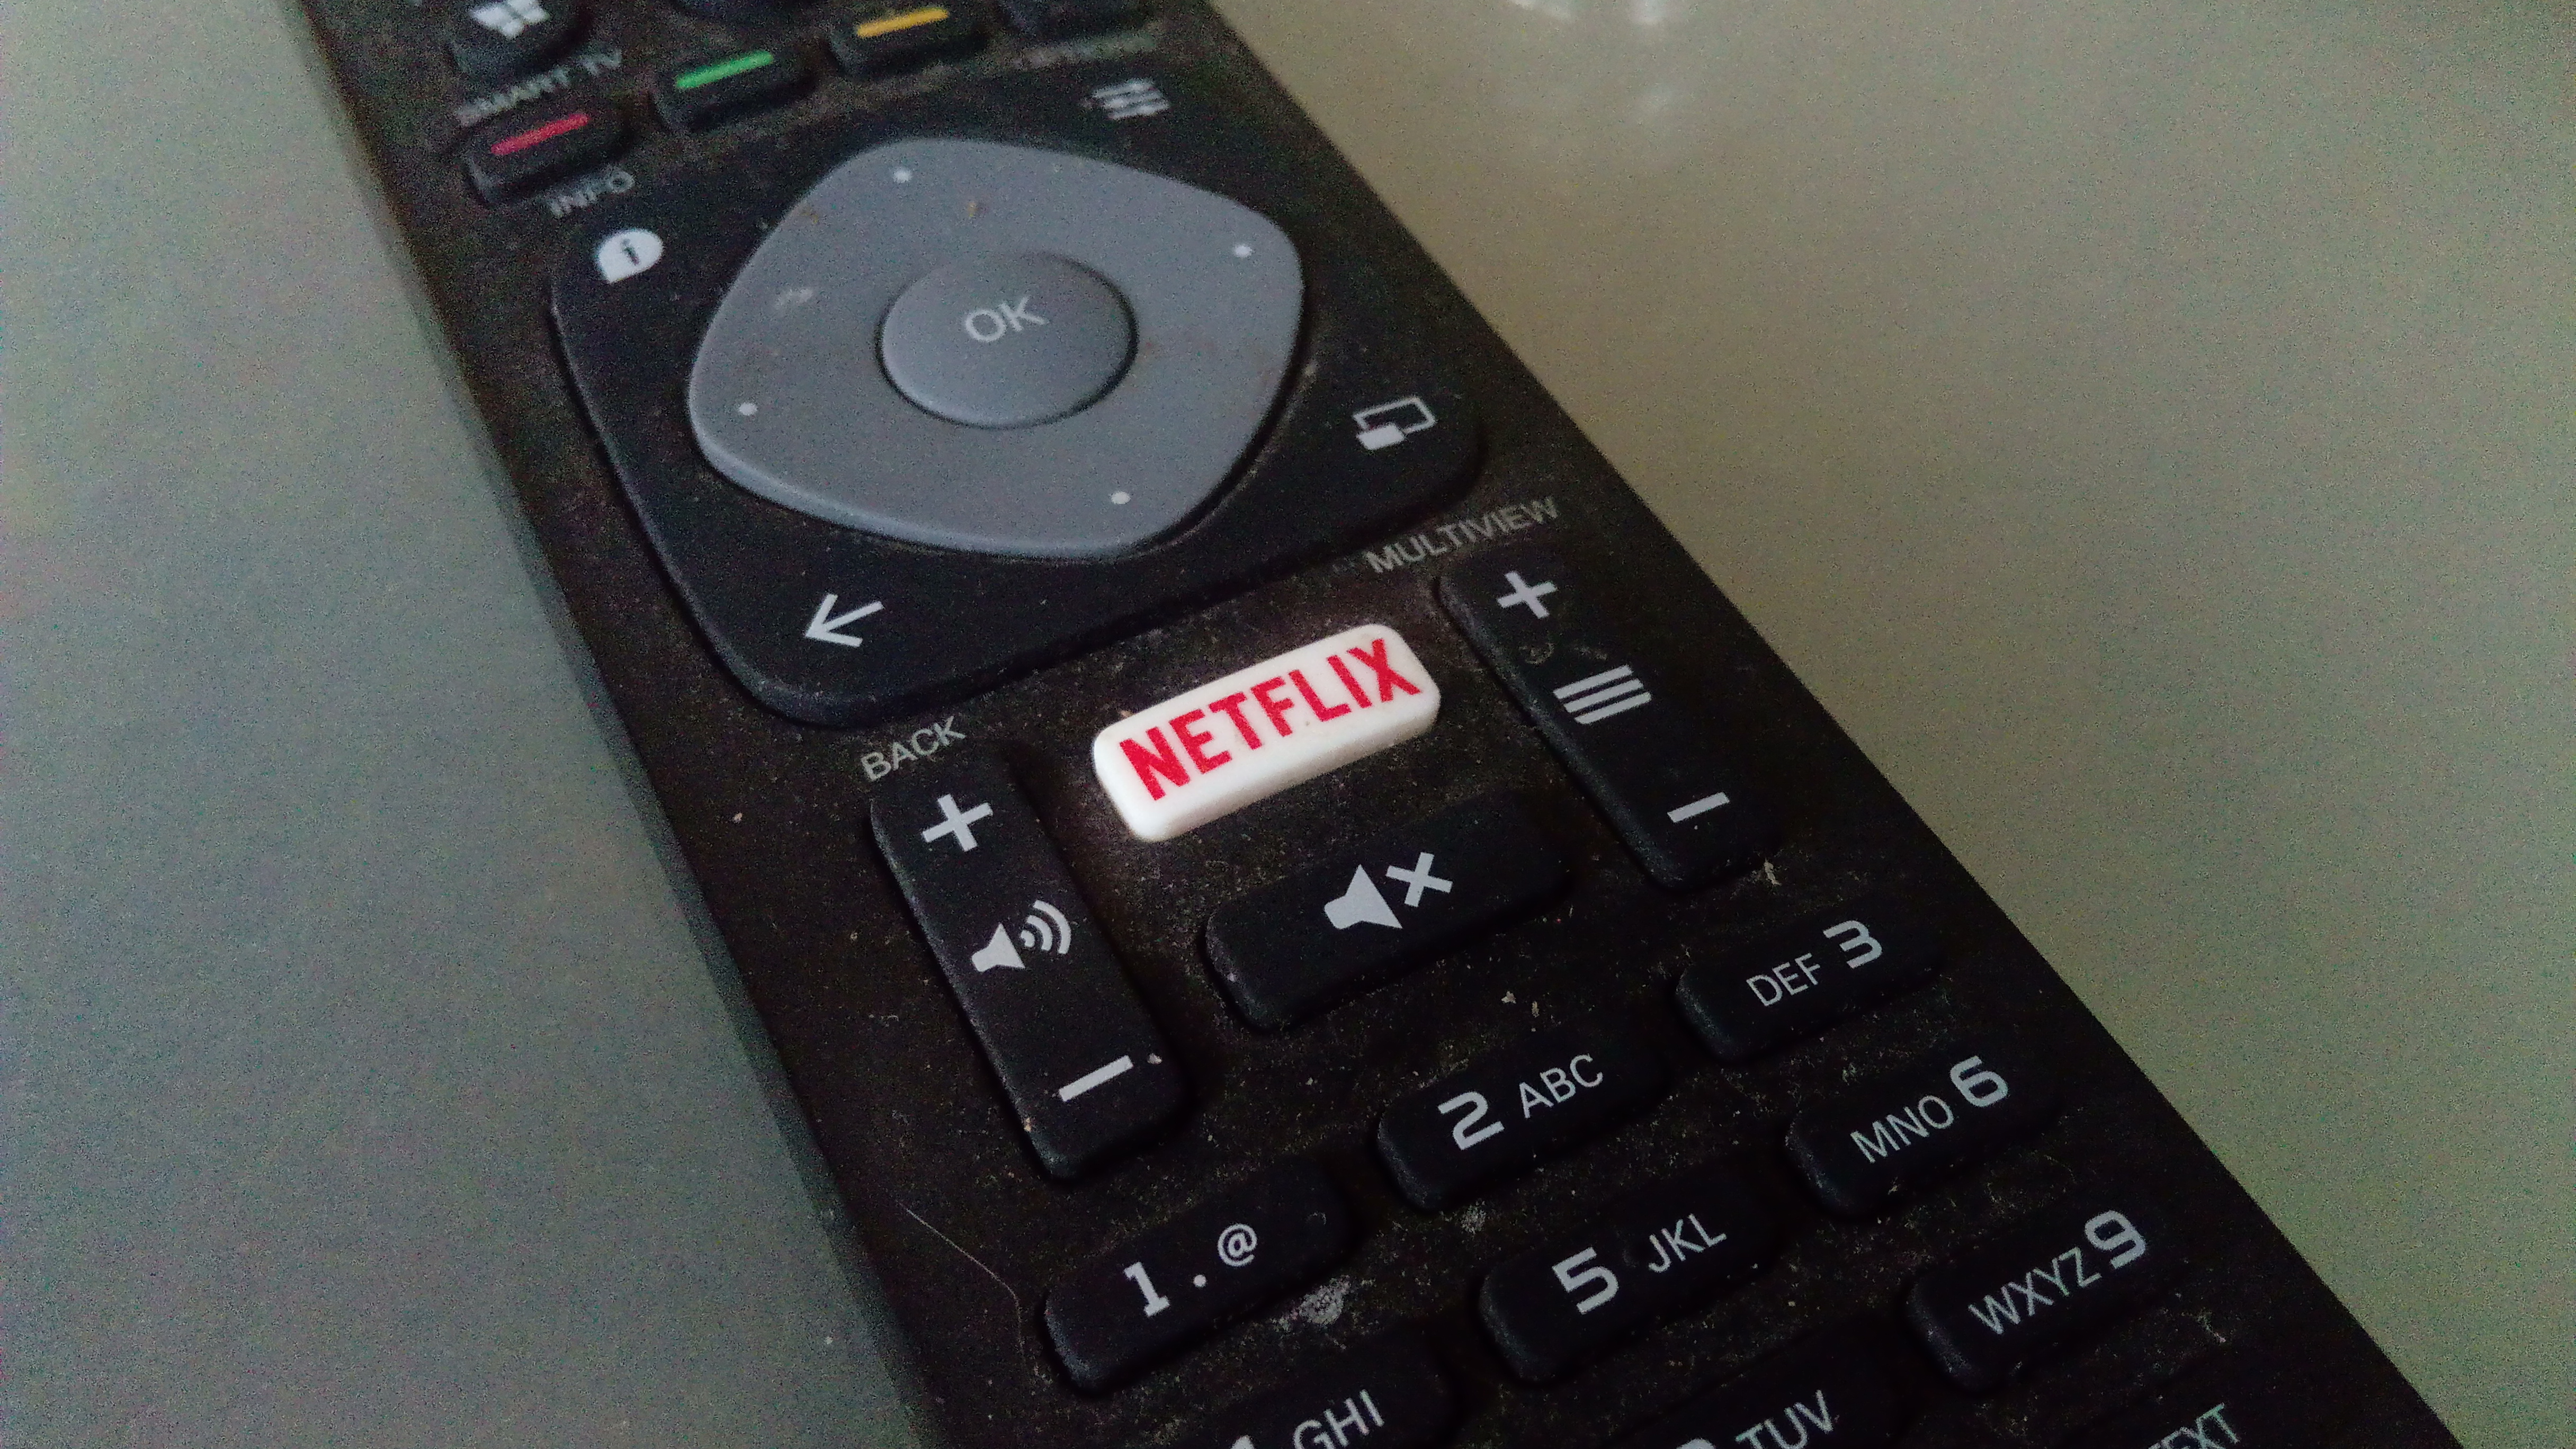 File:Philips remote control with a Netflix button, Finsterwolde (2019) 04.jpg - Wikimedia Commons